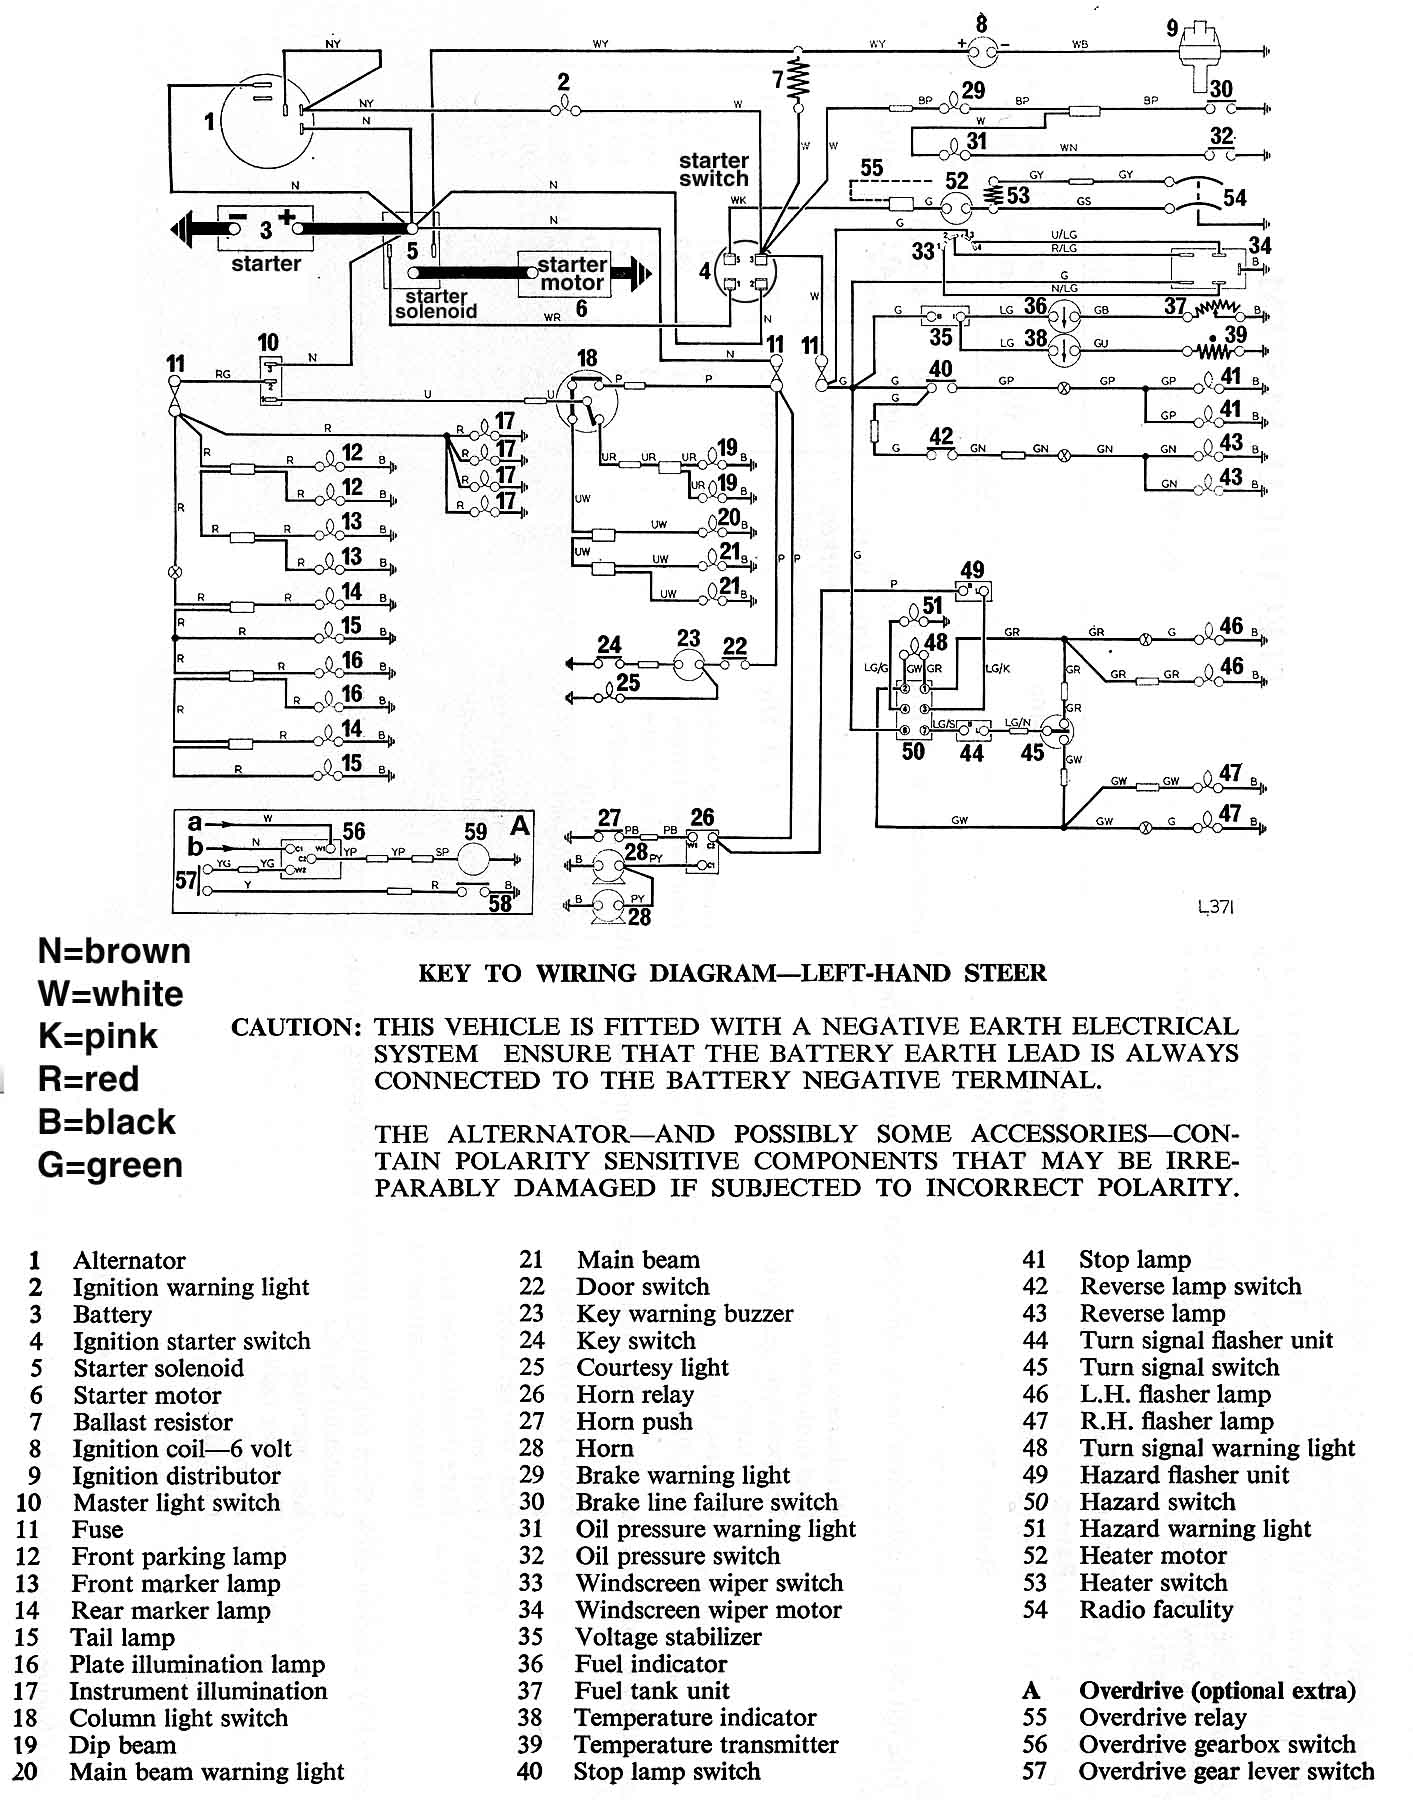 1965 Triumph Spitfire Mkii Wiring Diagram Library For Mg Midget Mkiv